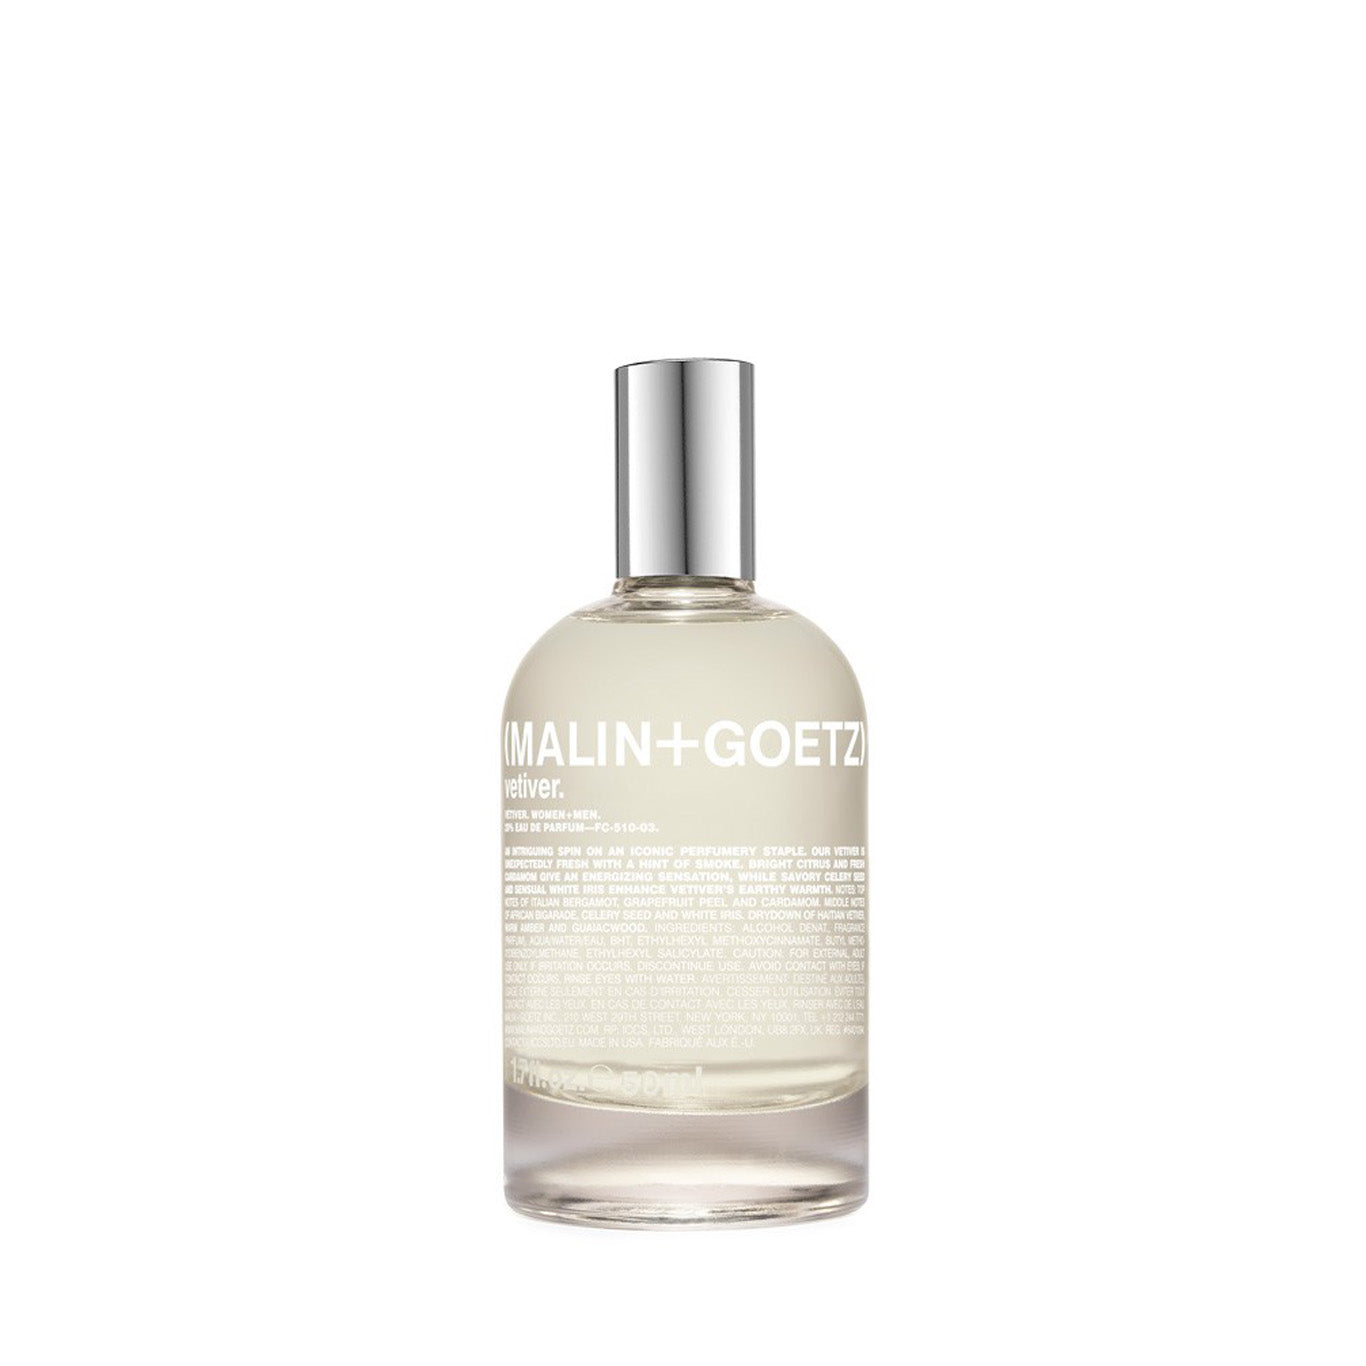 Malin + Goetz Vetiver Eau de Parfum: 100ml - The Union Project